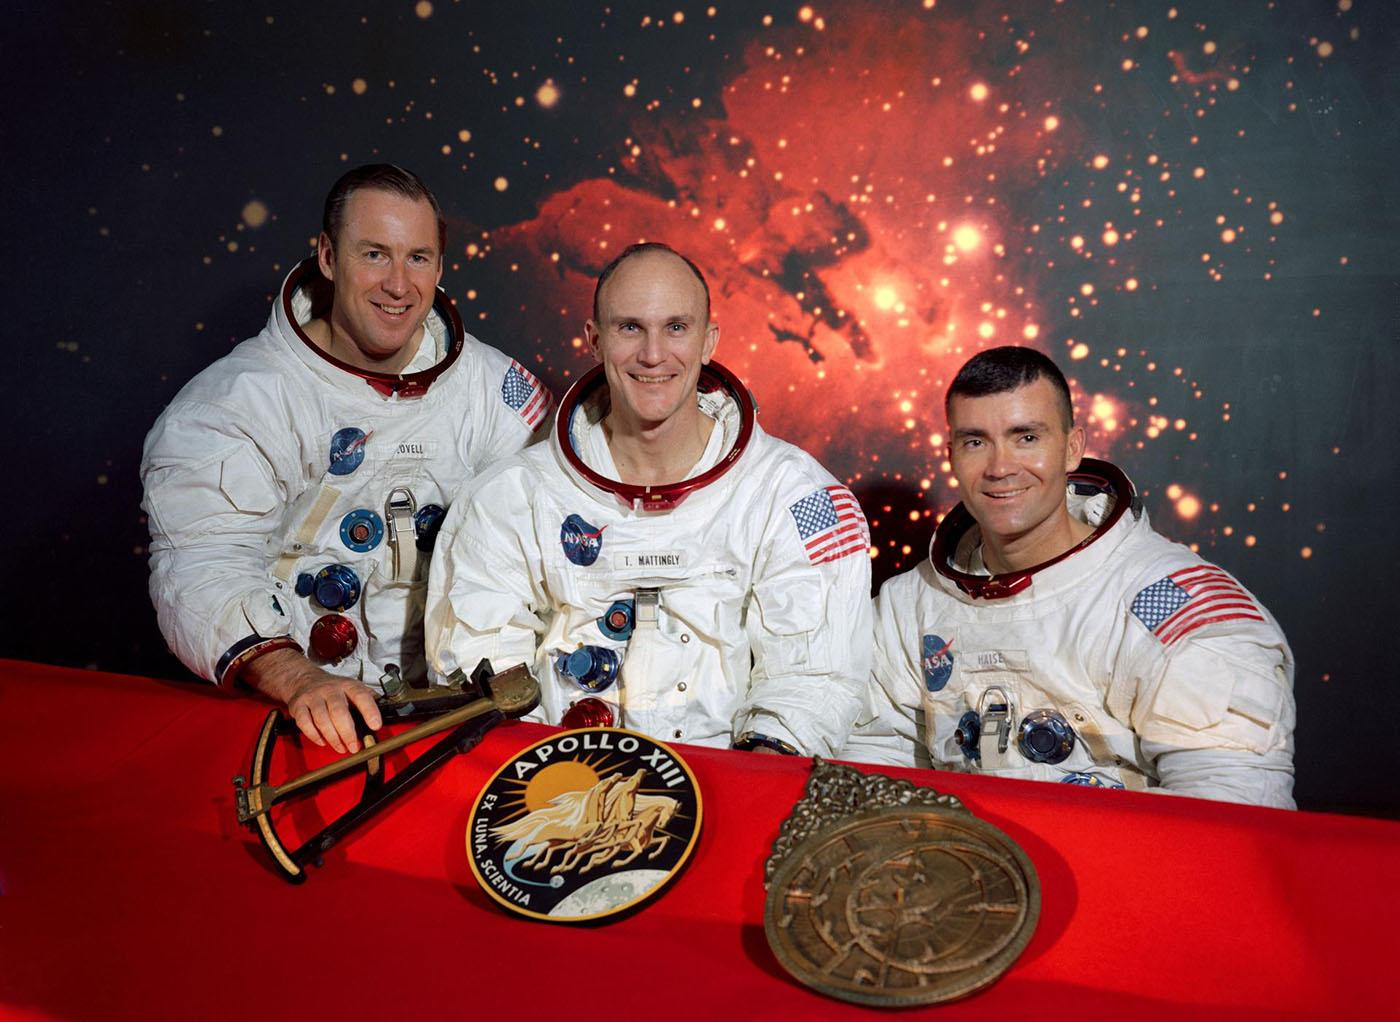 Apollo 13 Crew: Jim Lovelll, Ken Mattingly, and Fred Haise